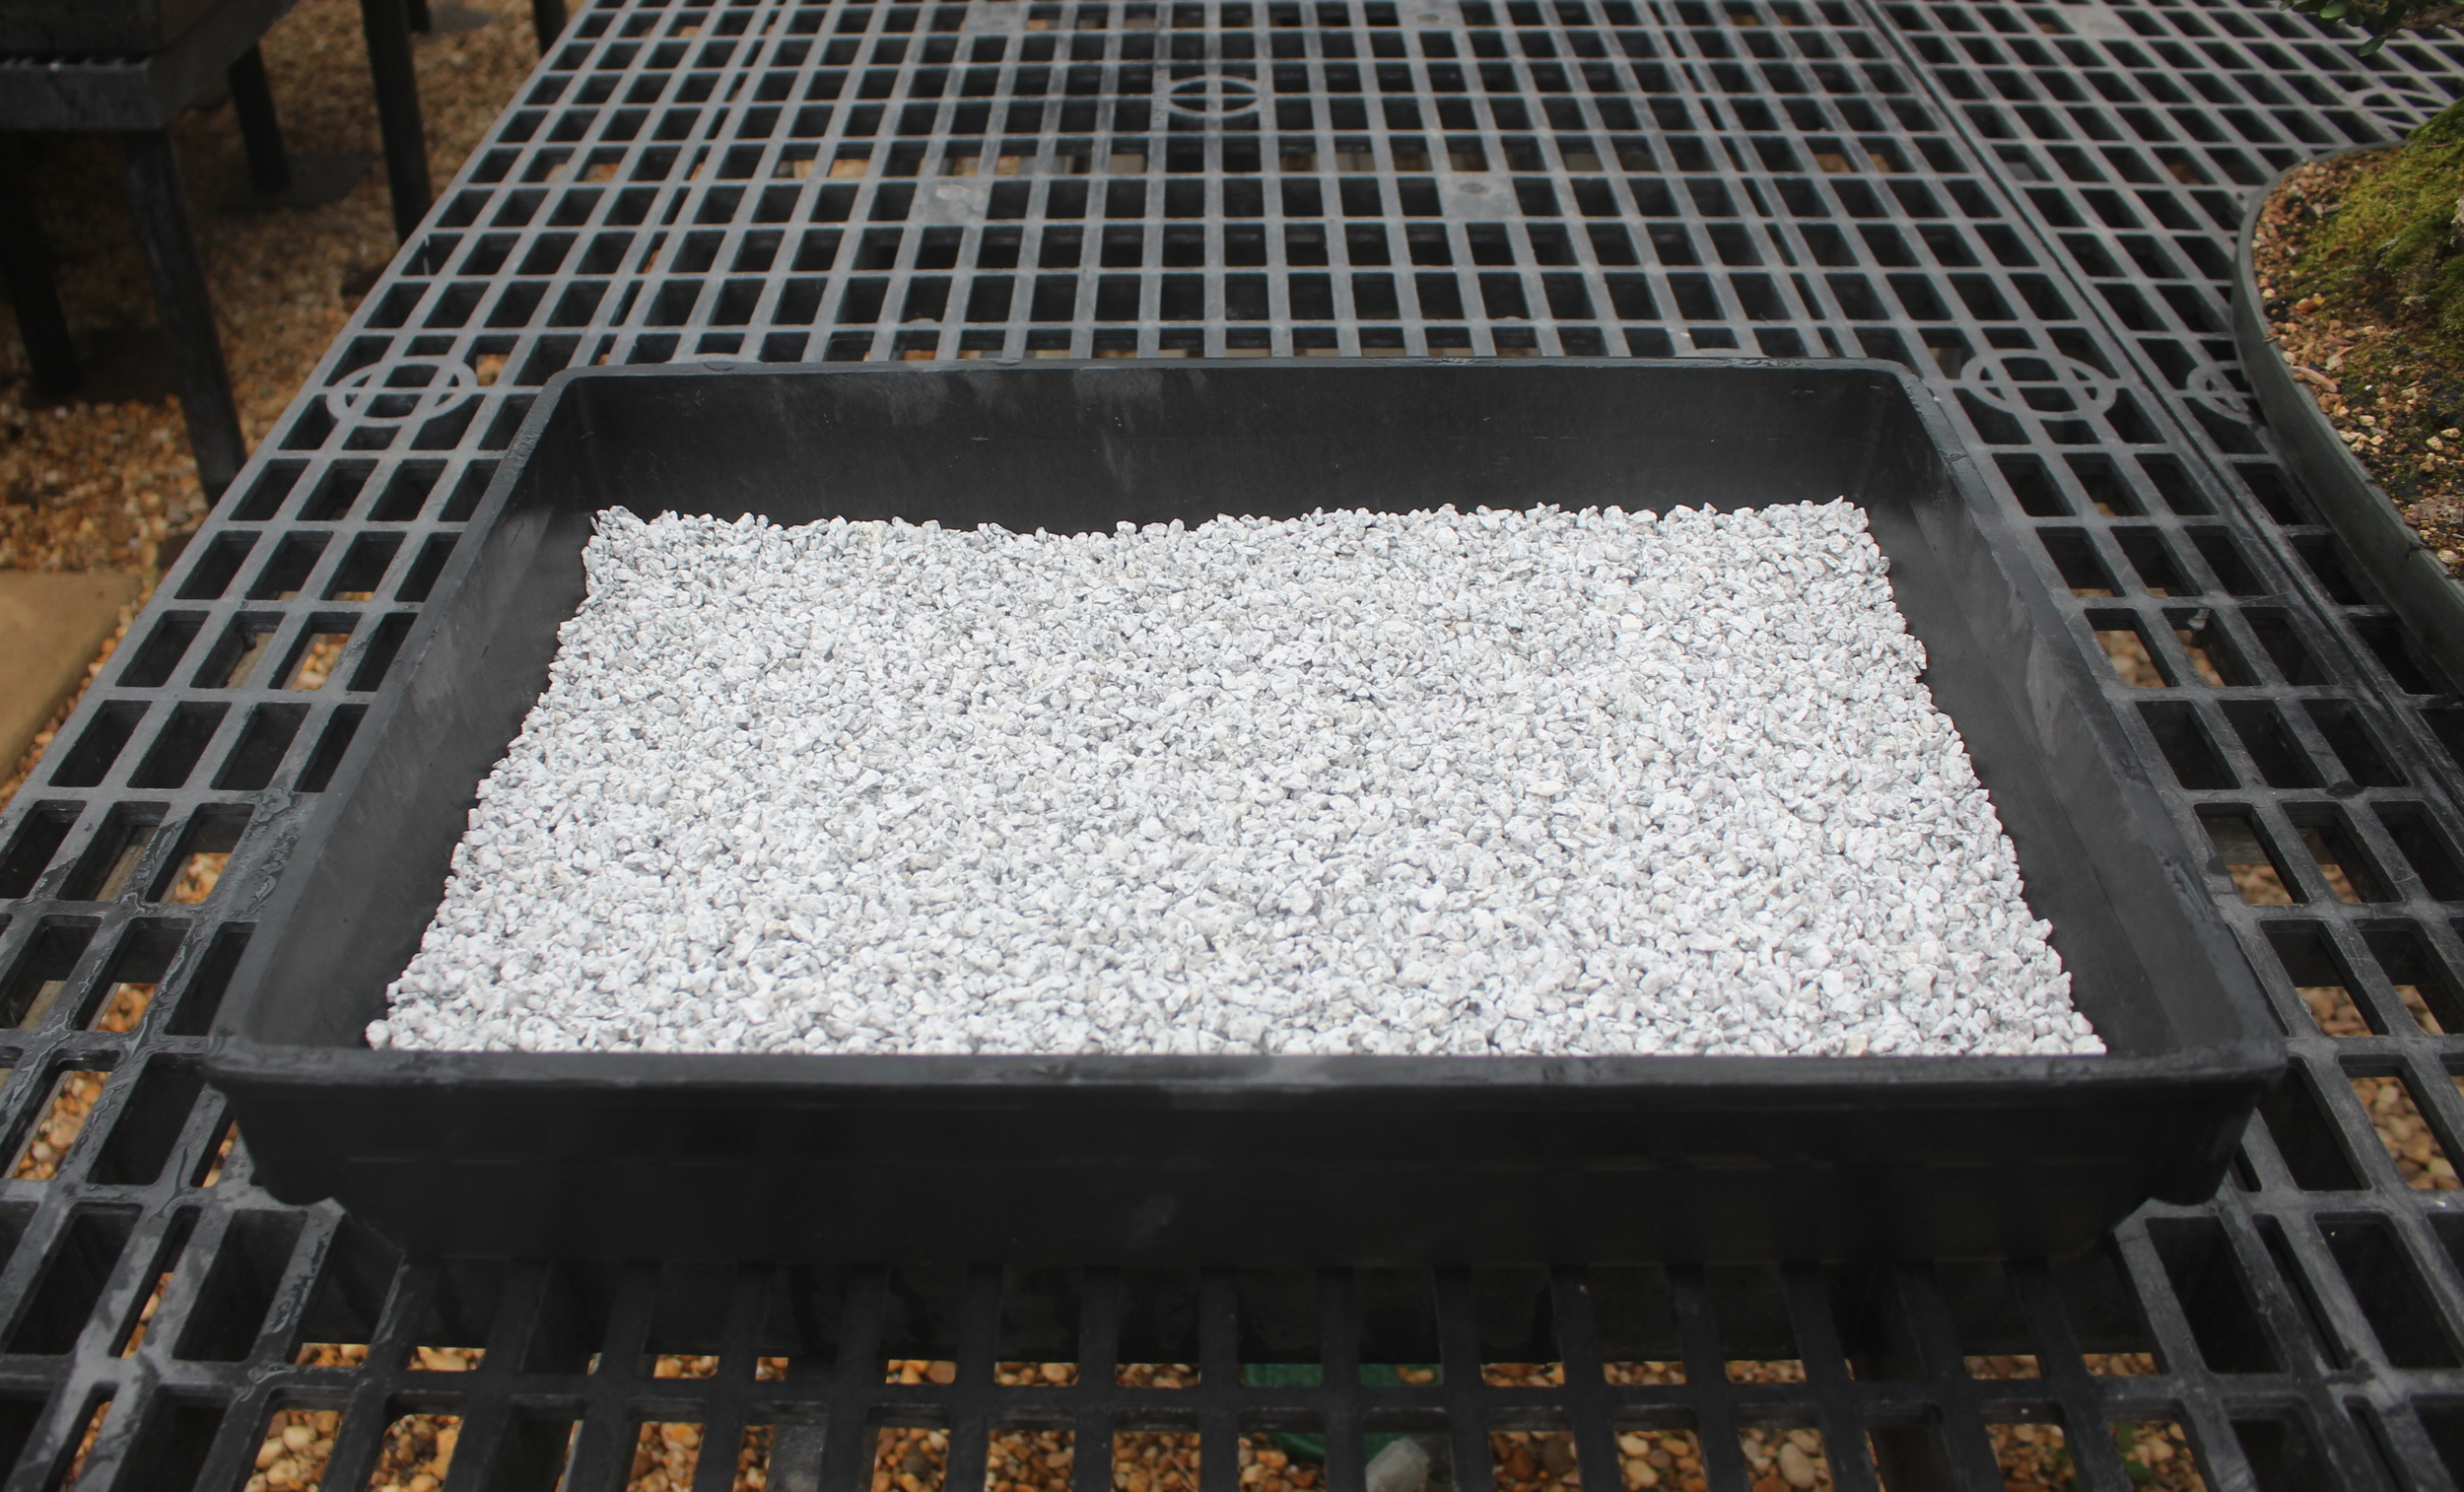 This type of the crushed stone keeps the container moist.